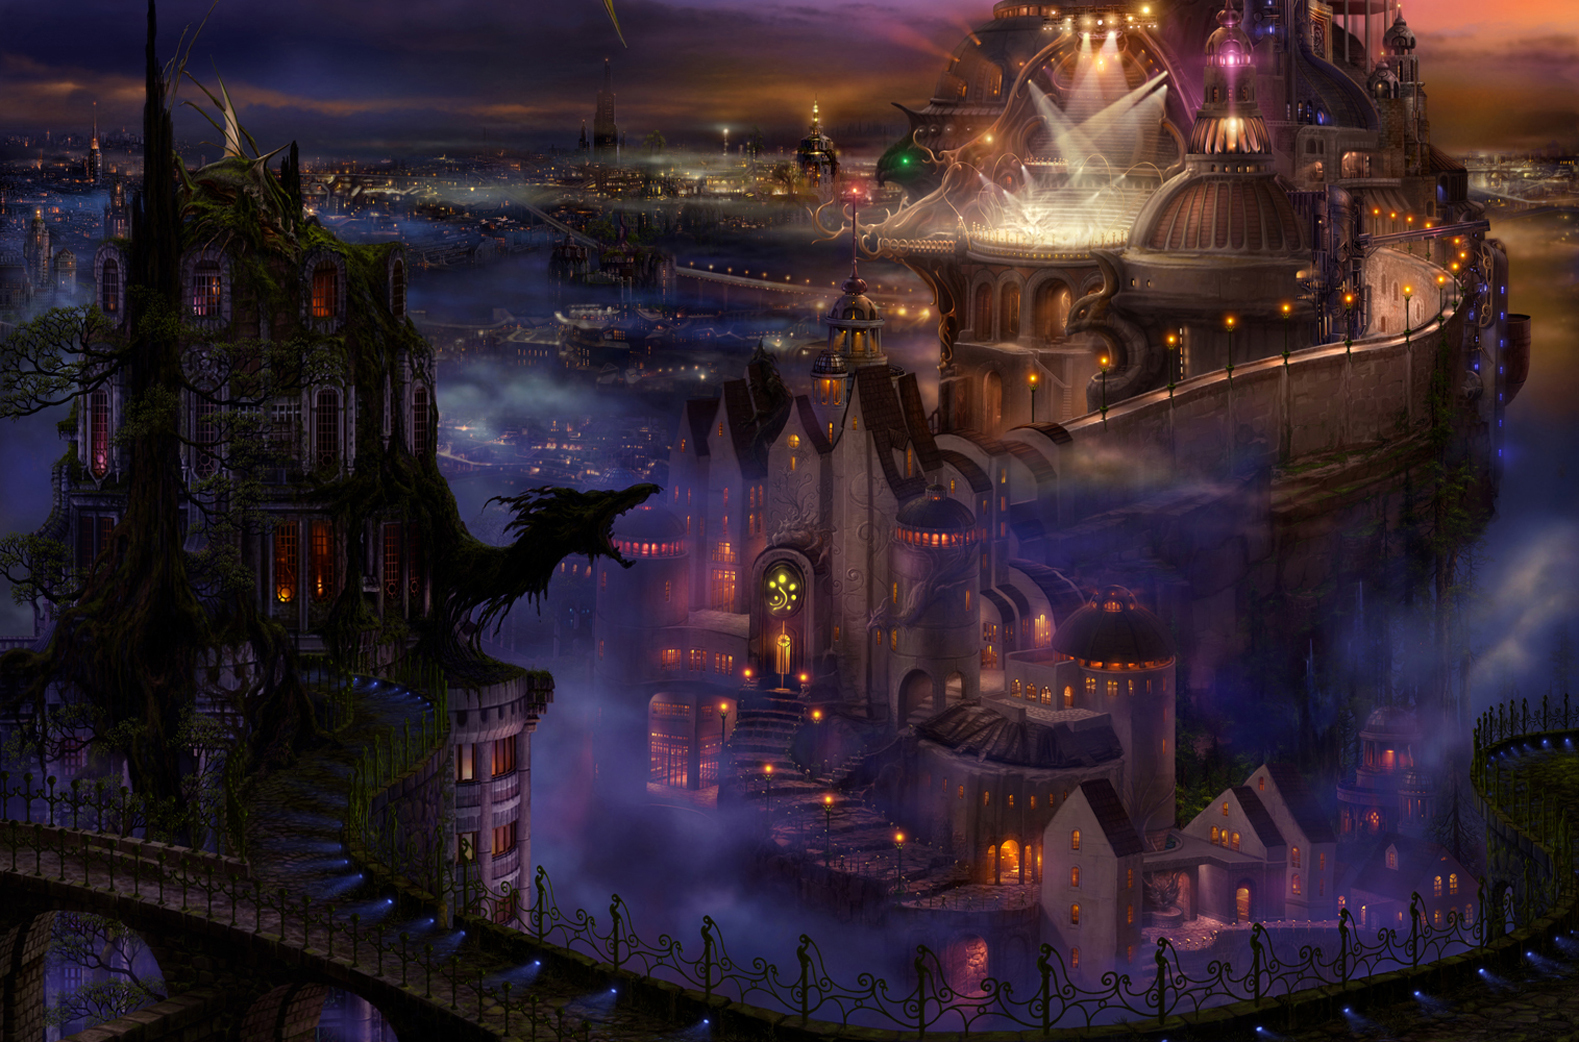 Fantasy art city - photo#3